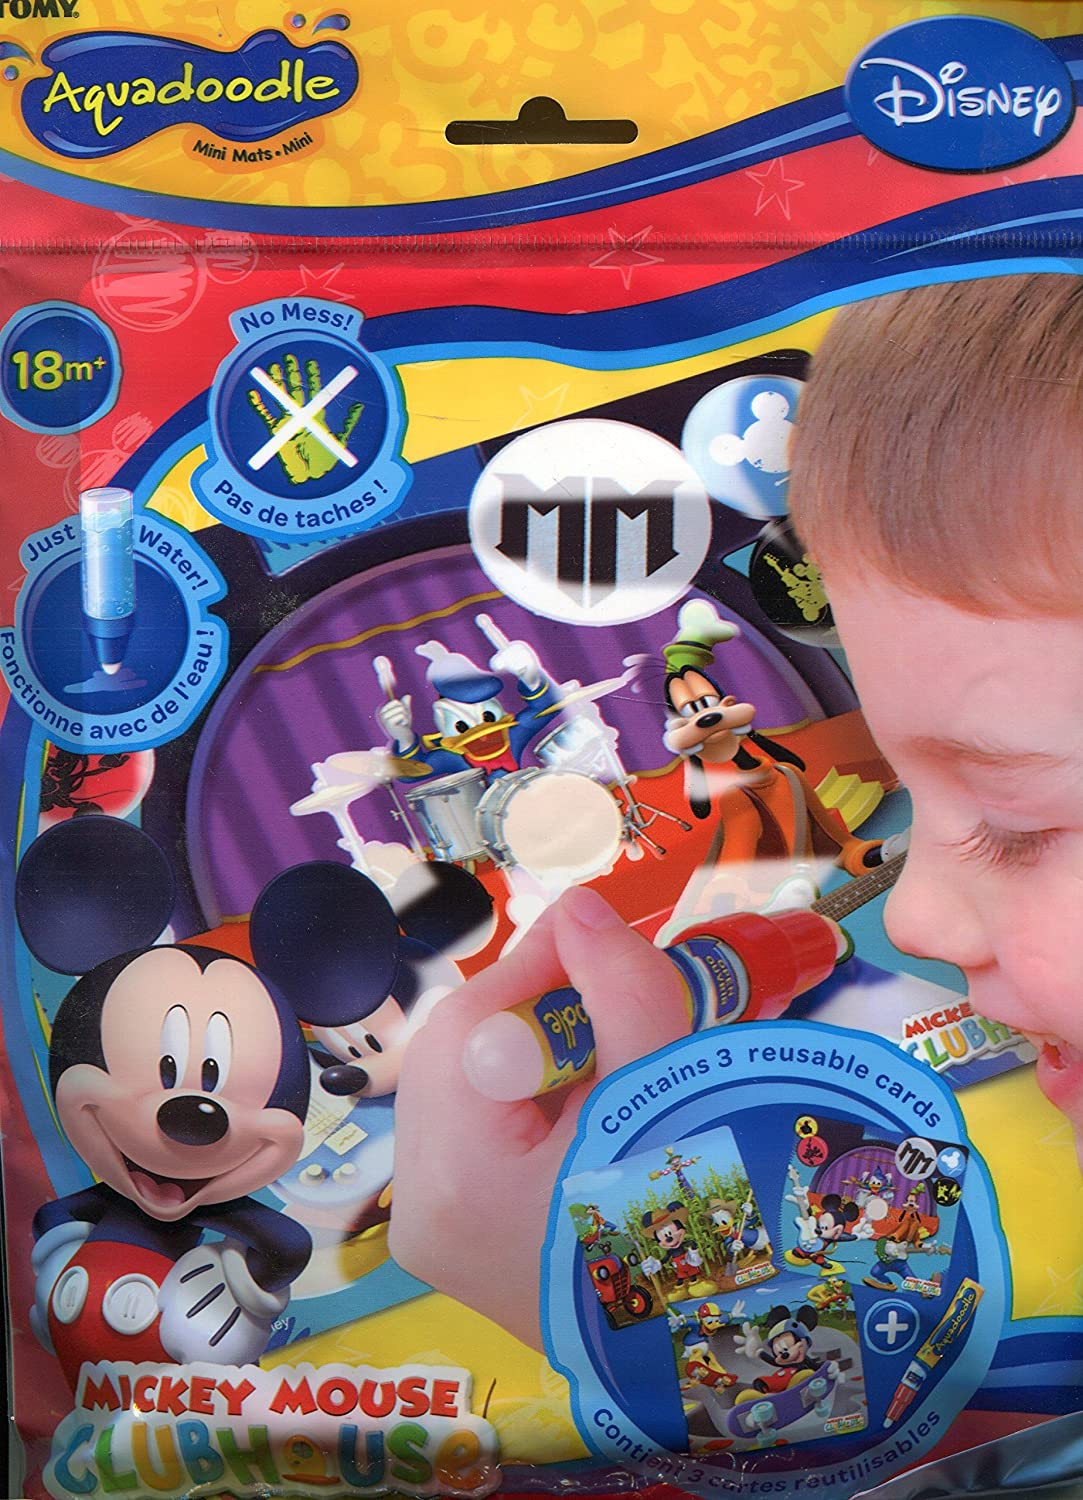 Tomy Aquadoodle Mickey Mouse Clubhouse Mini Mats